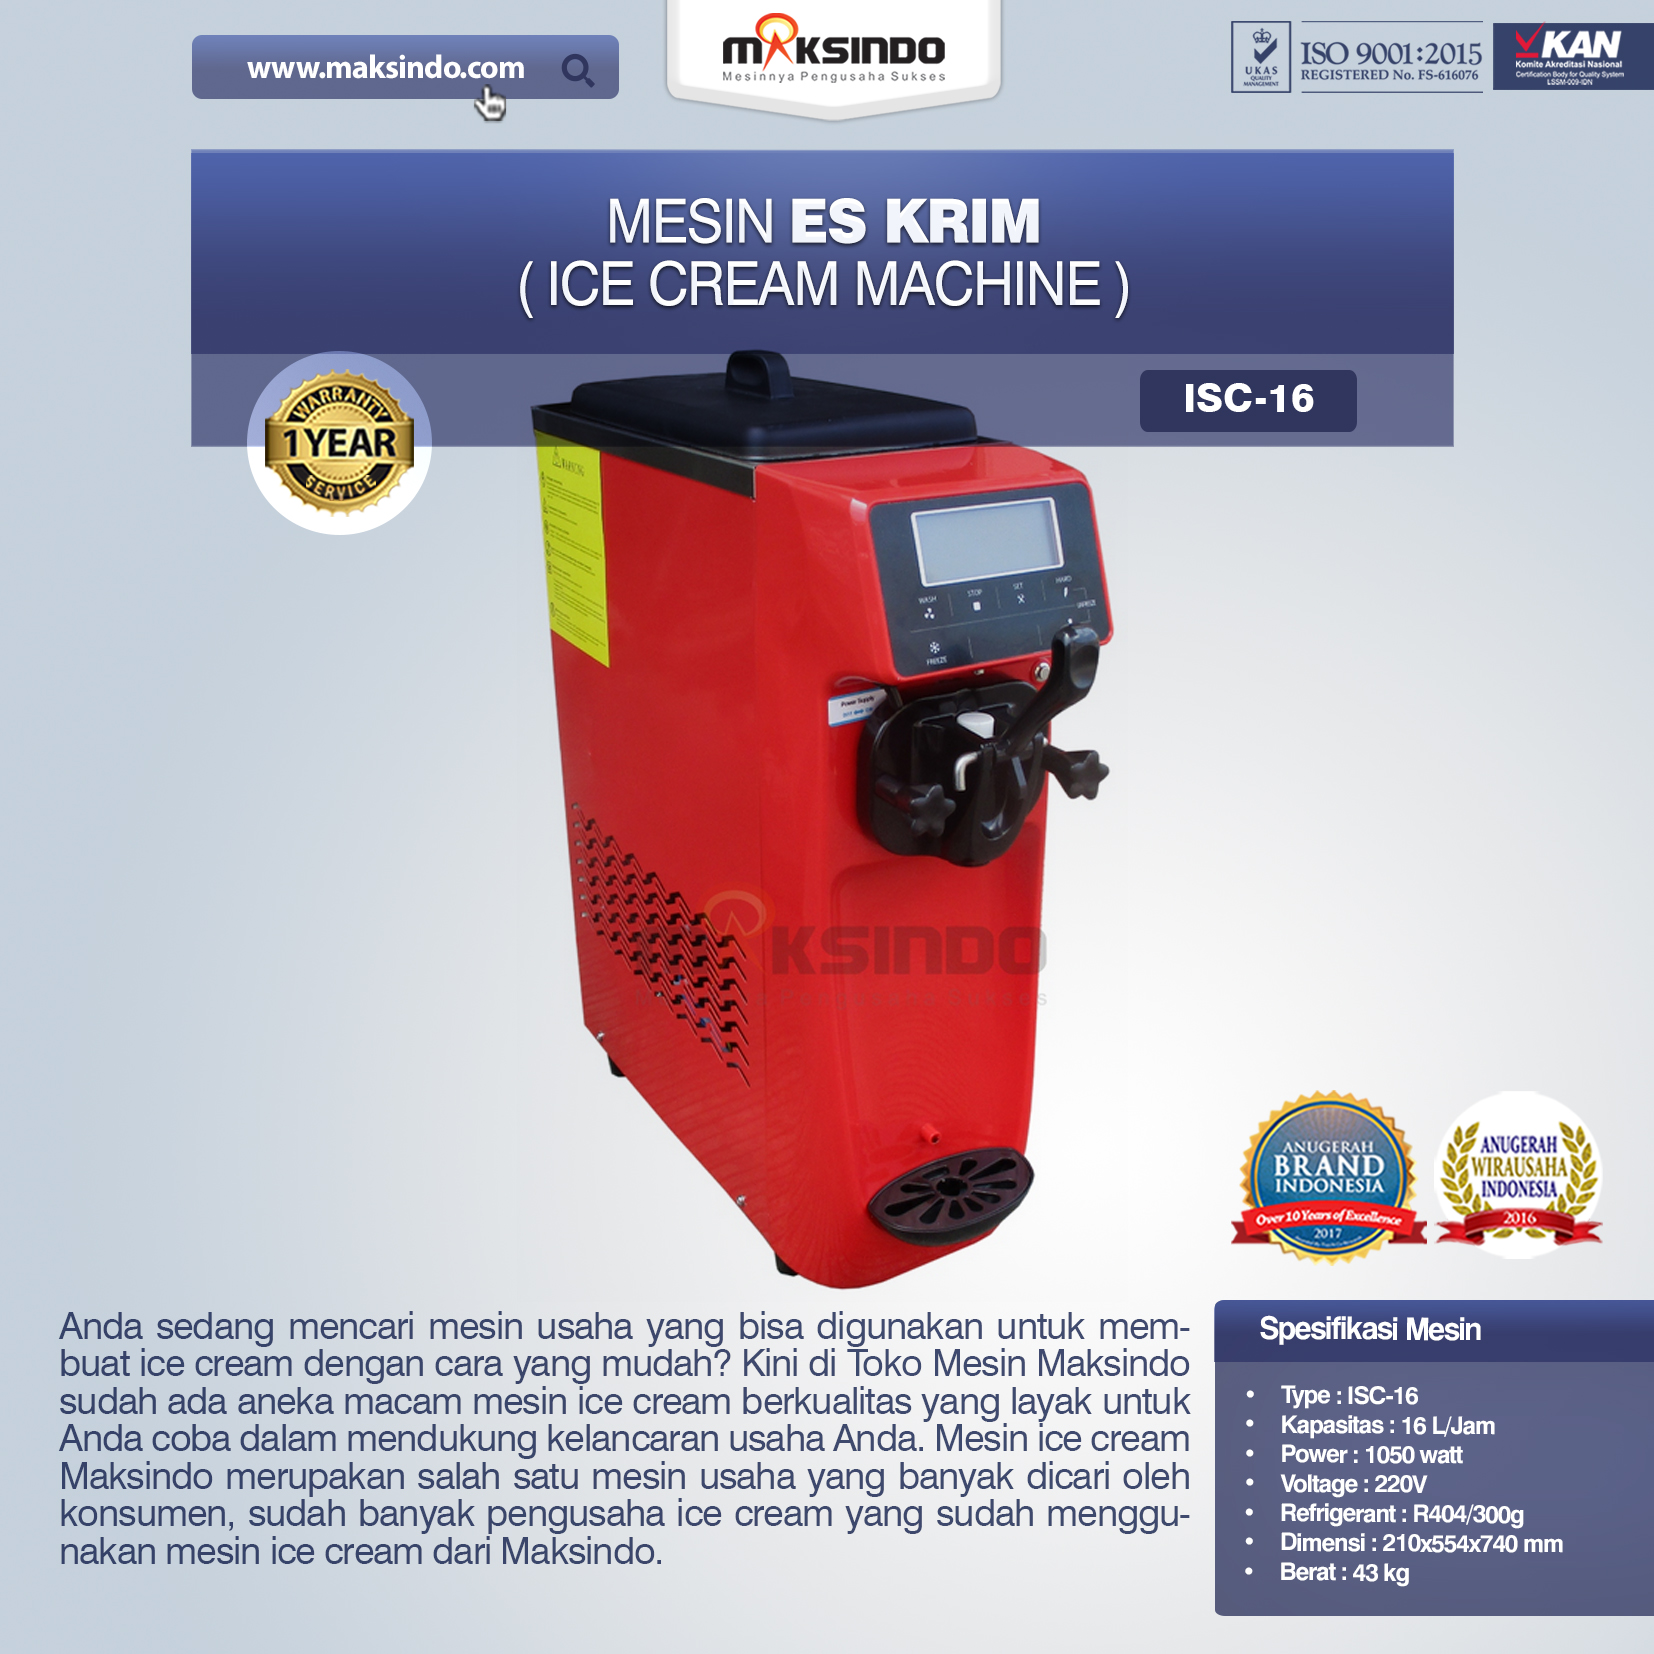 Mesin Es Krim Ice Cream Machine ISC-16